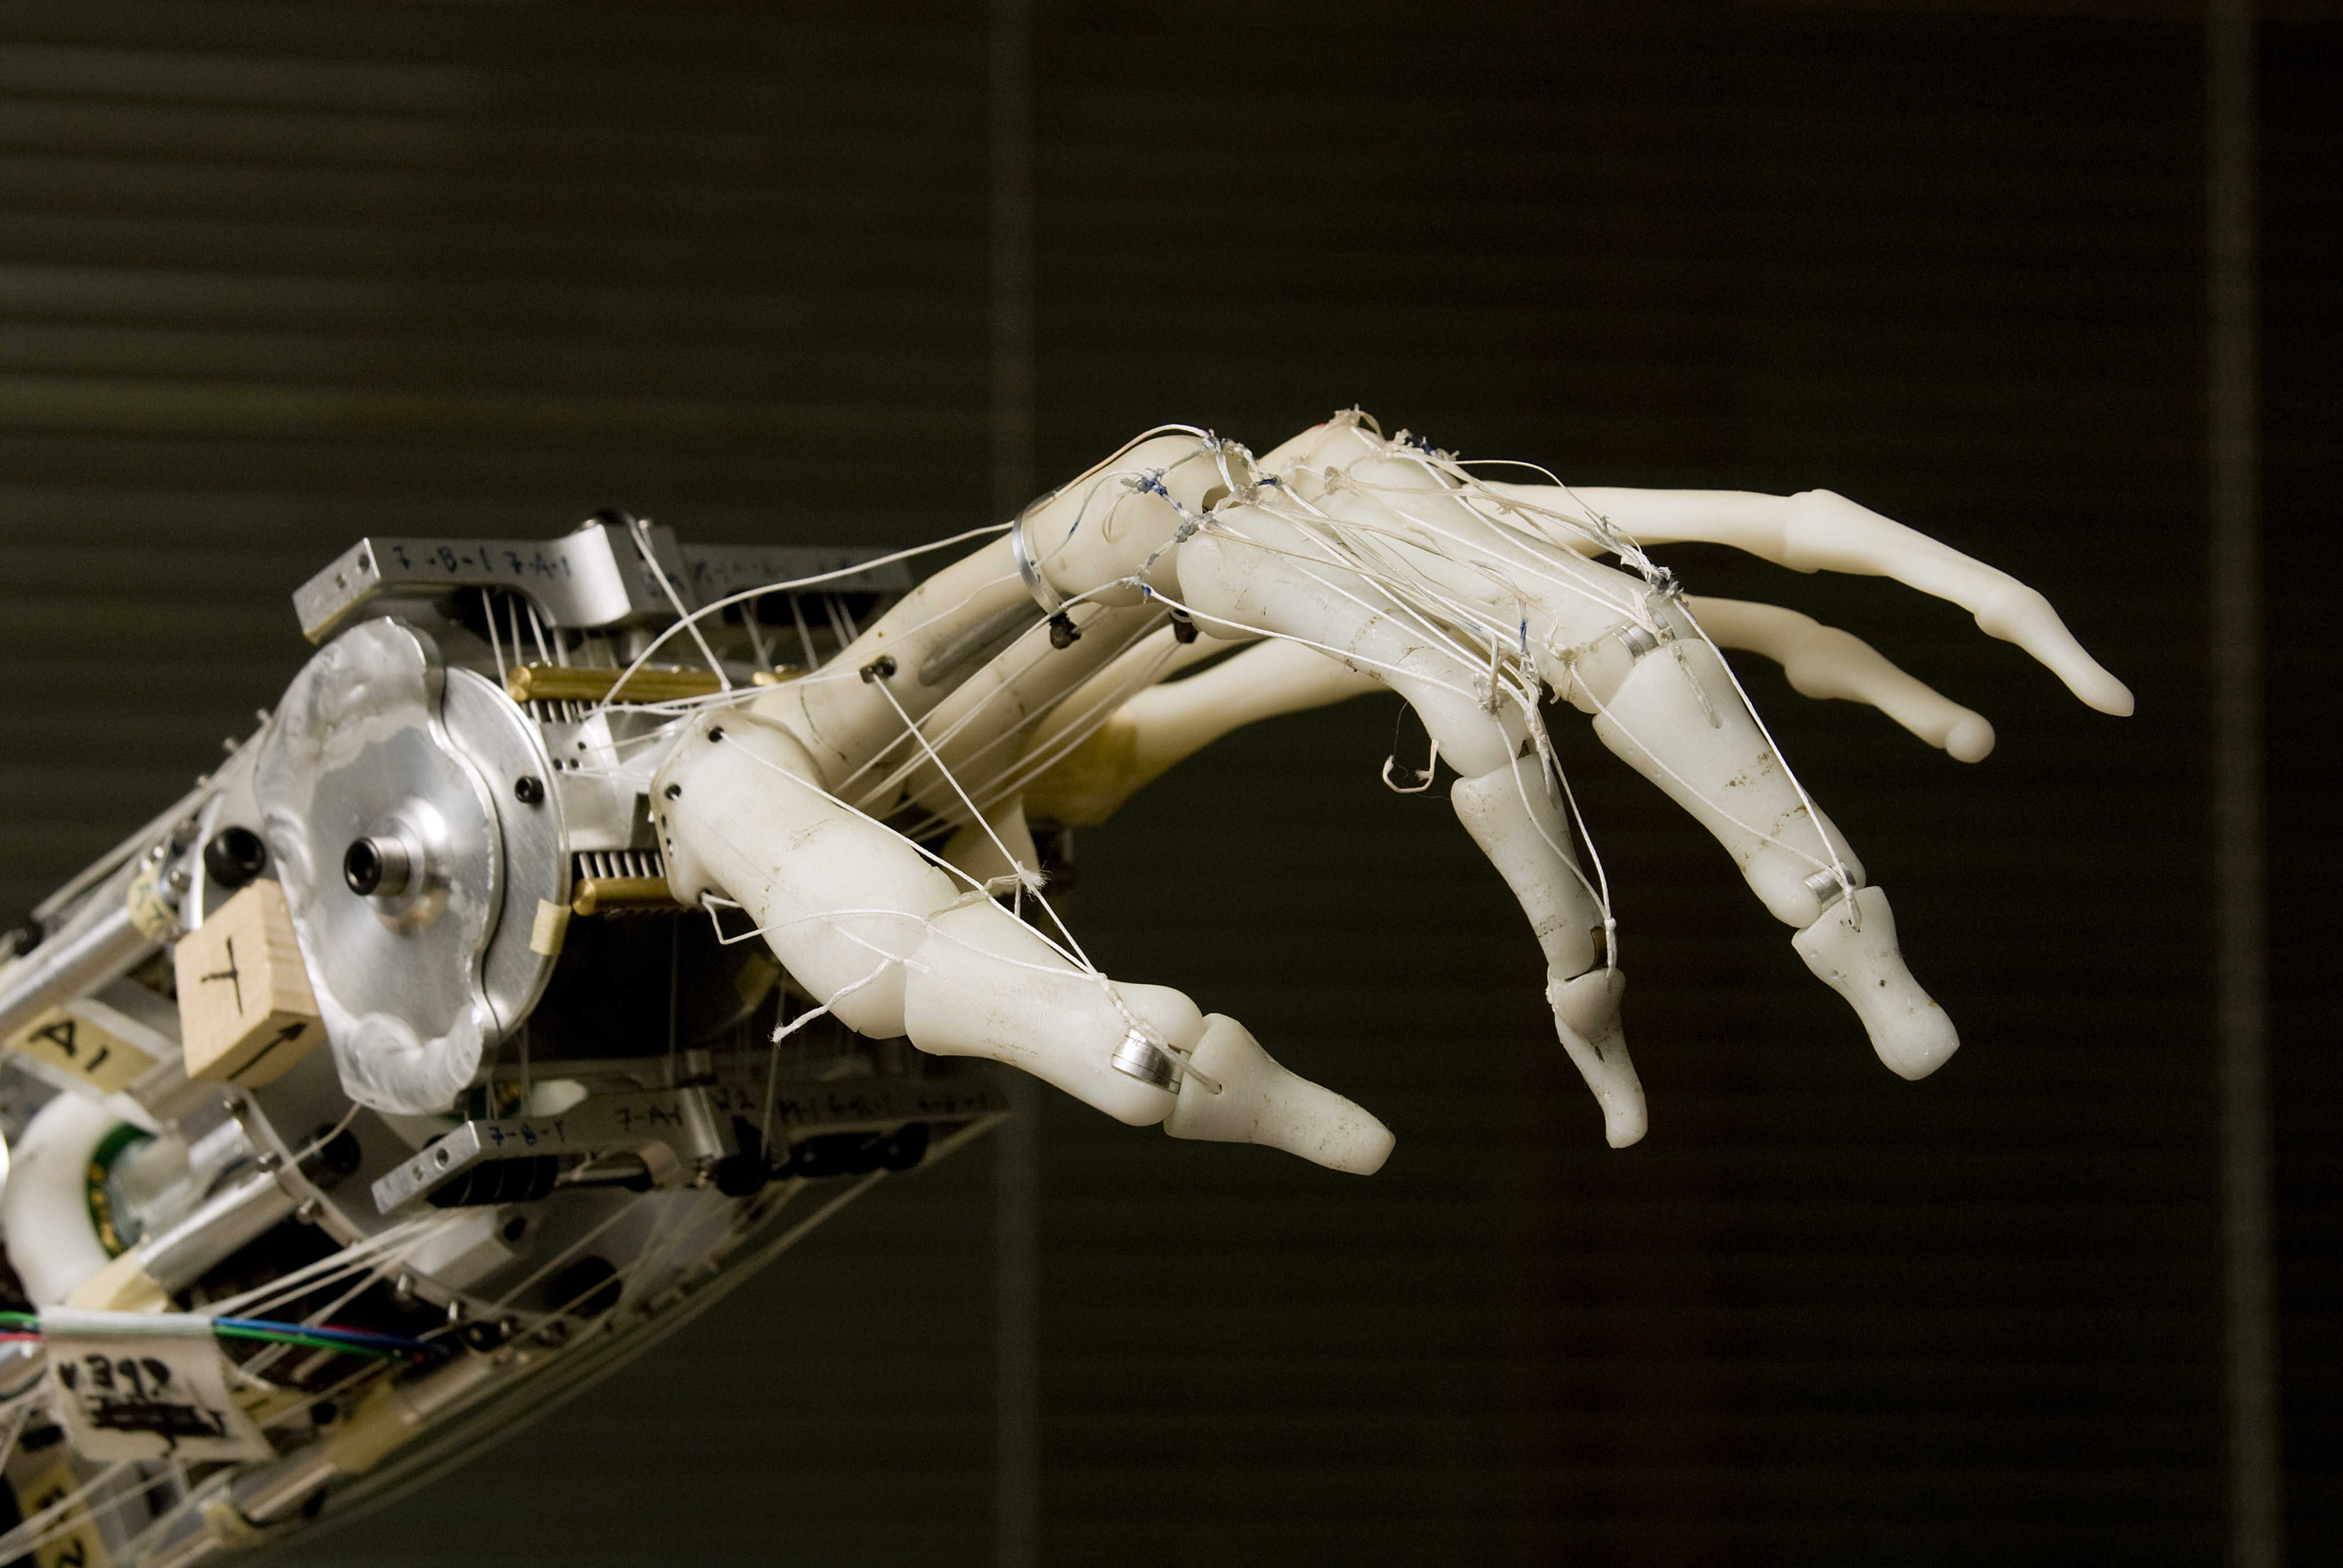 Apple's latest hire specialized at building robotic hands.